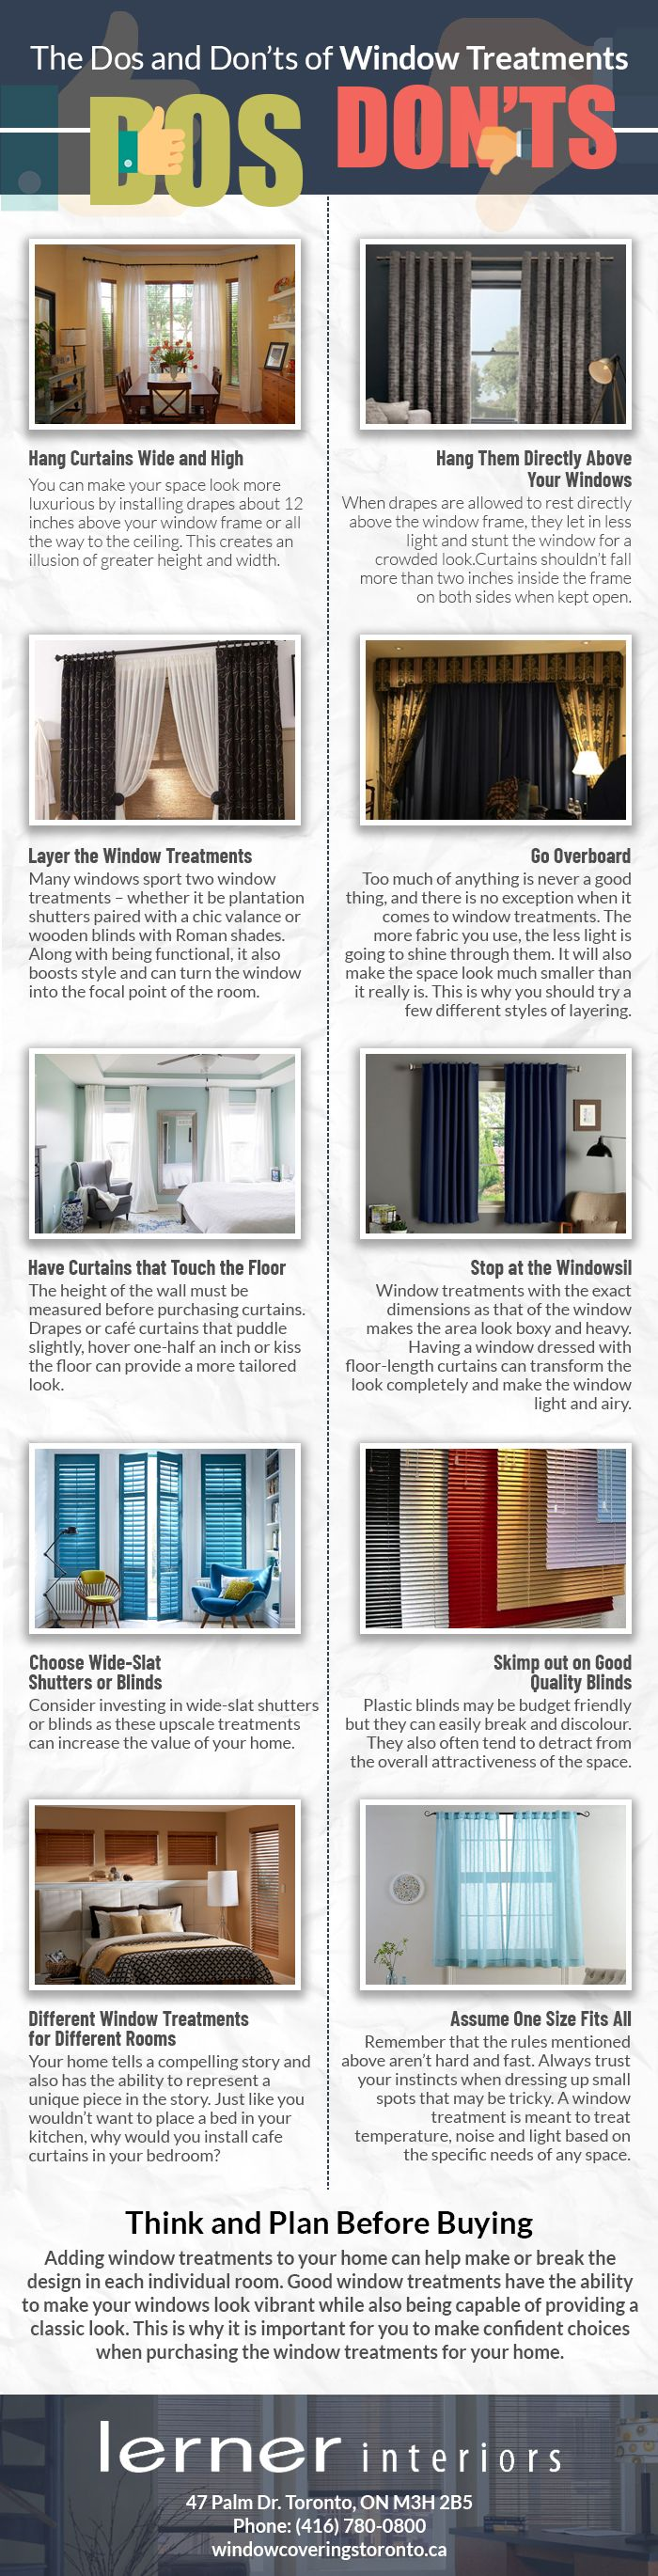 The Dos and Don'ts of Window Treatments